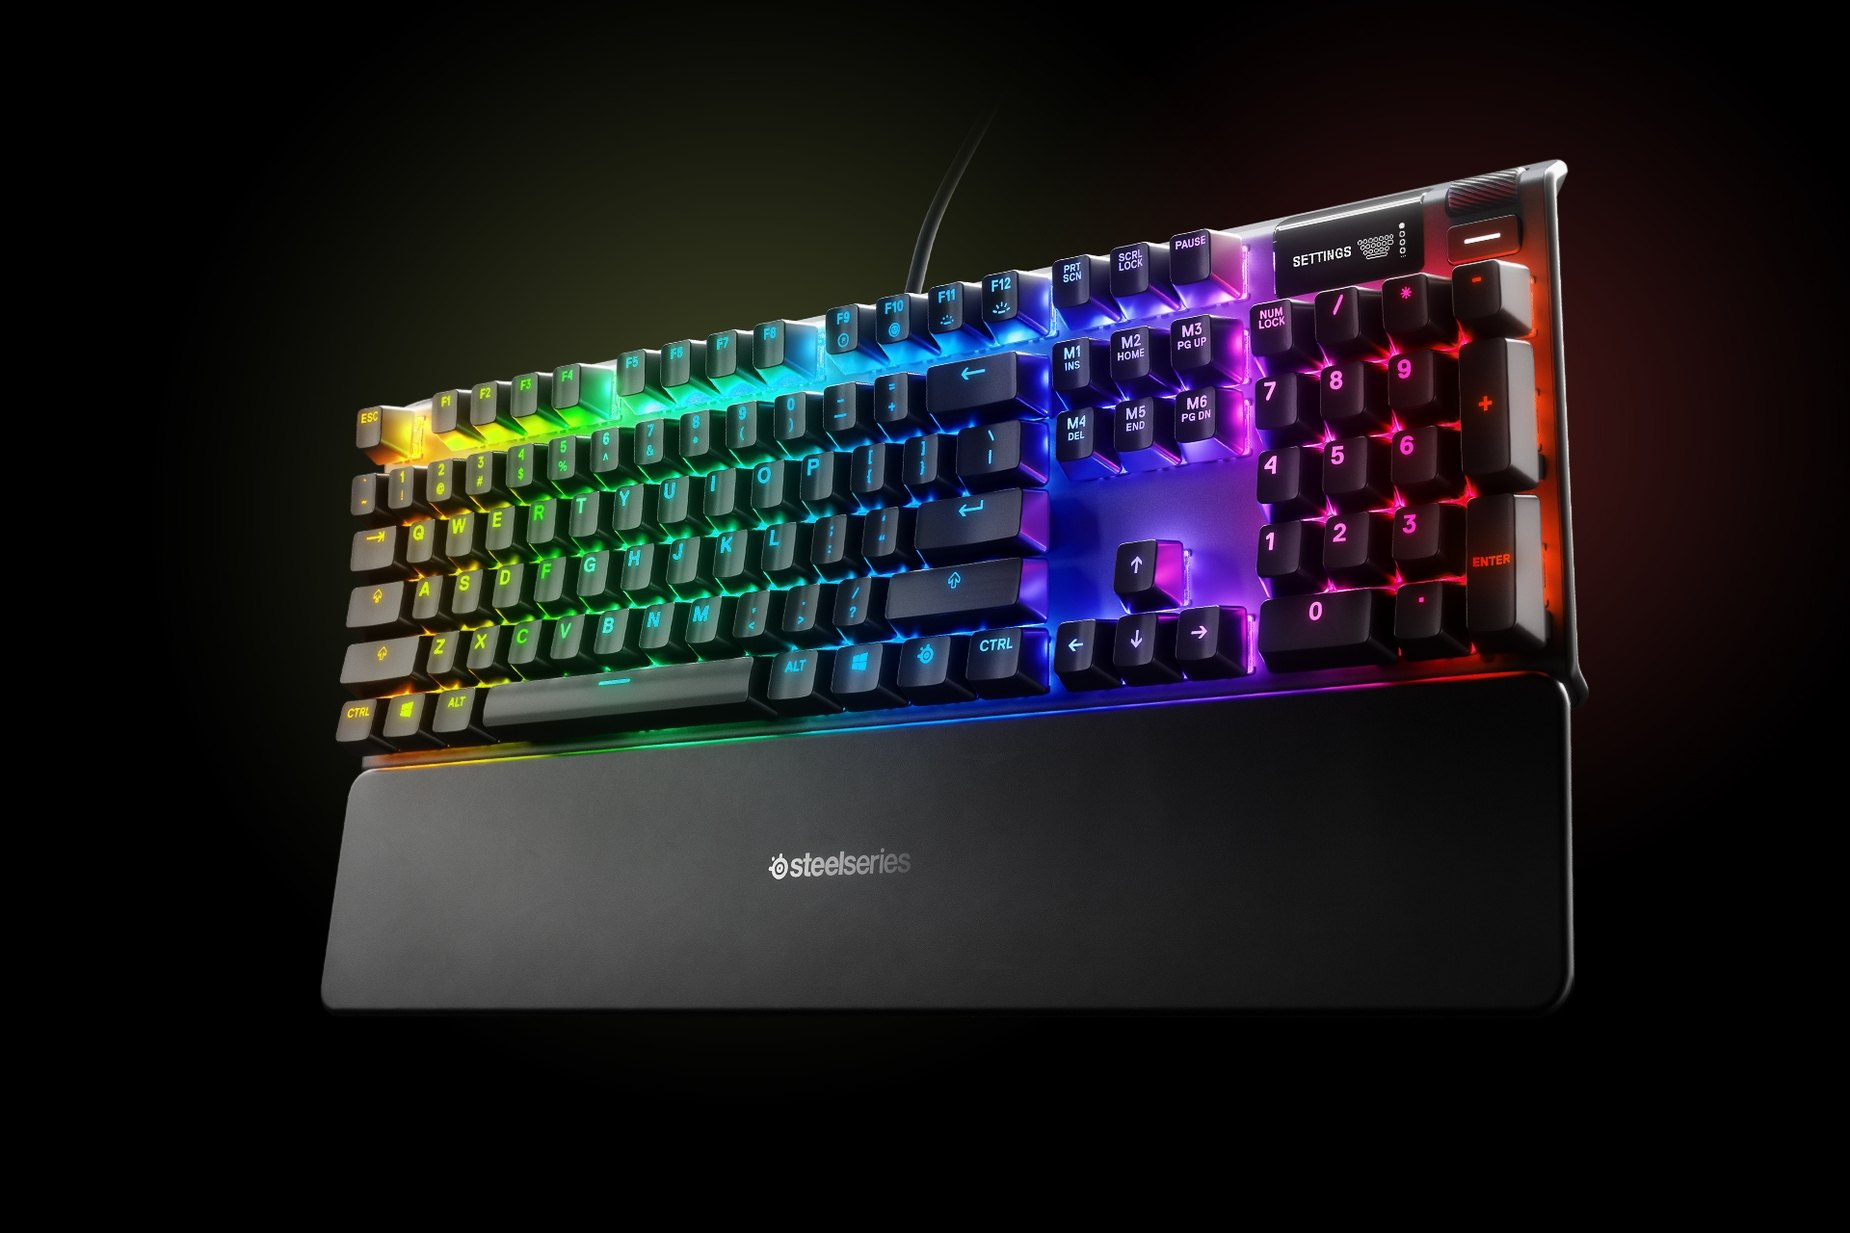 法语-Apex 7 (Blue Switch) gaming keyboard with the illumination lit up on dark background, also shows the OLED screen and controls used to change settings and adjust audio